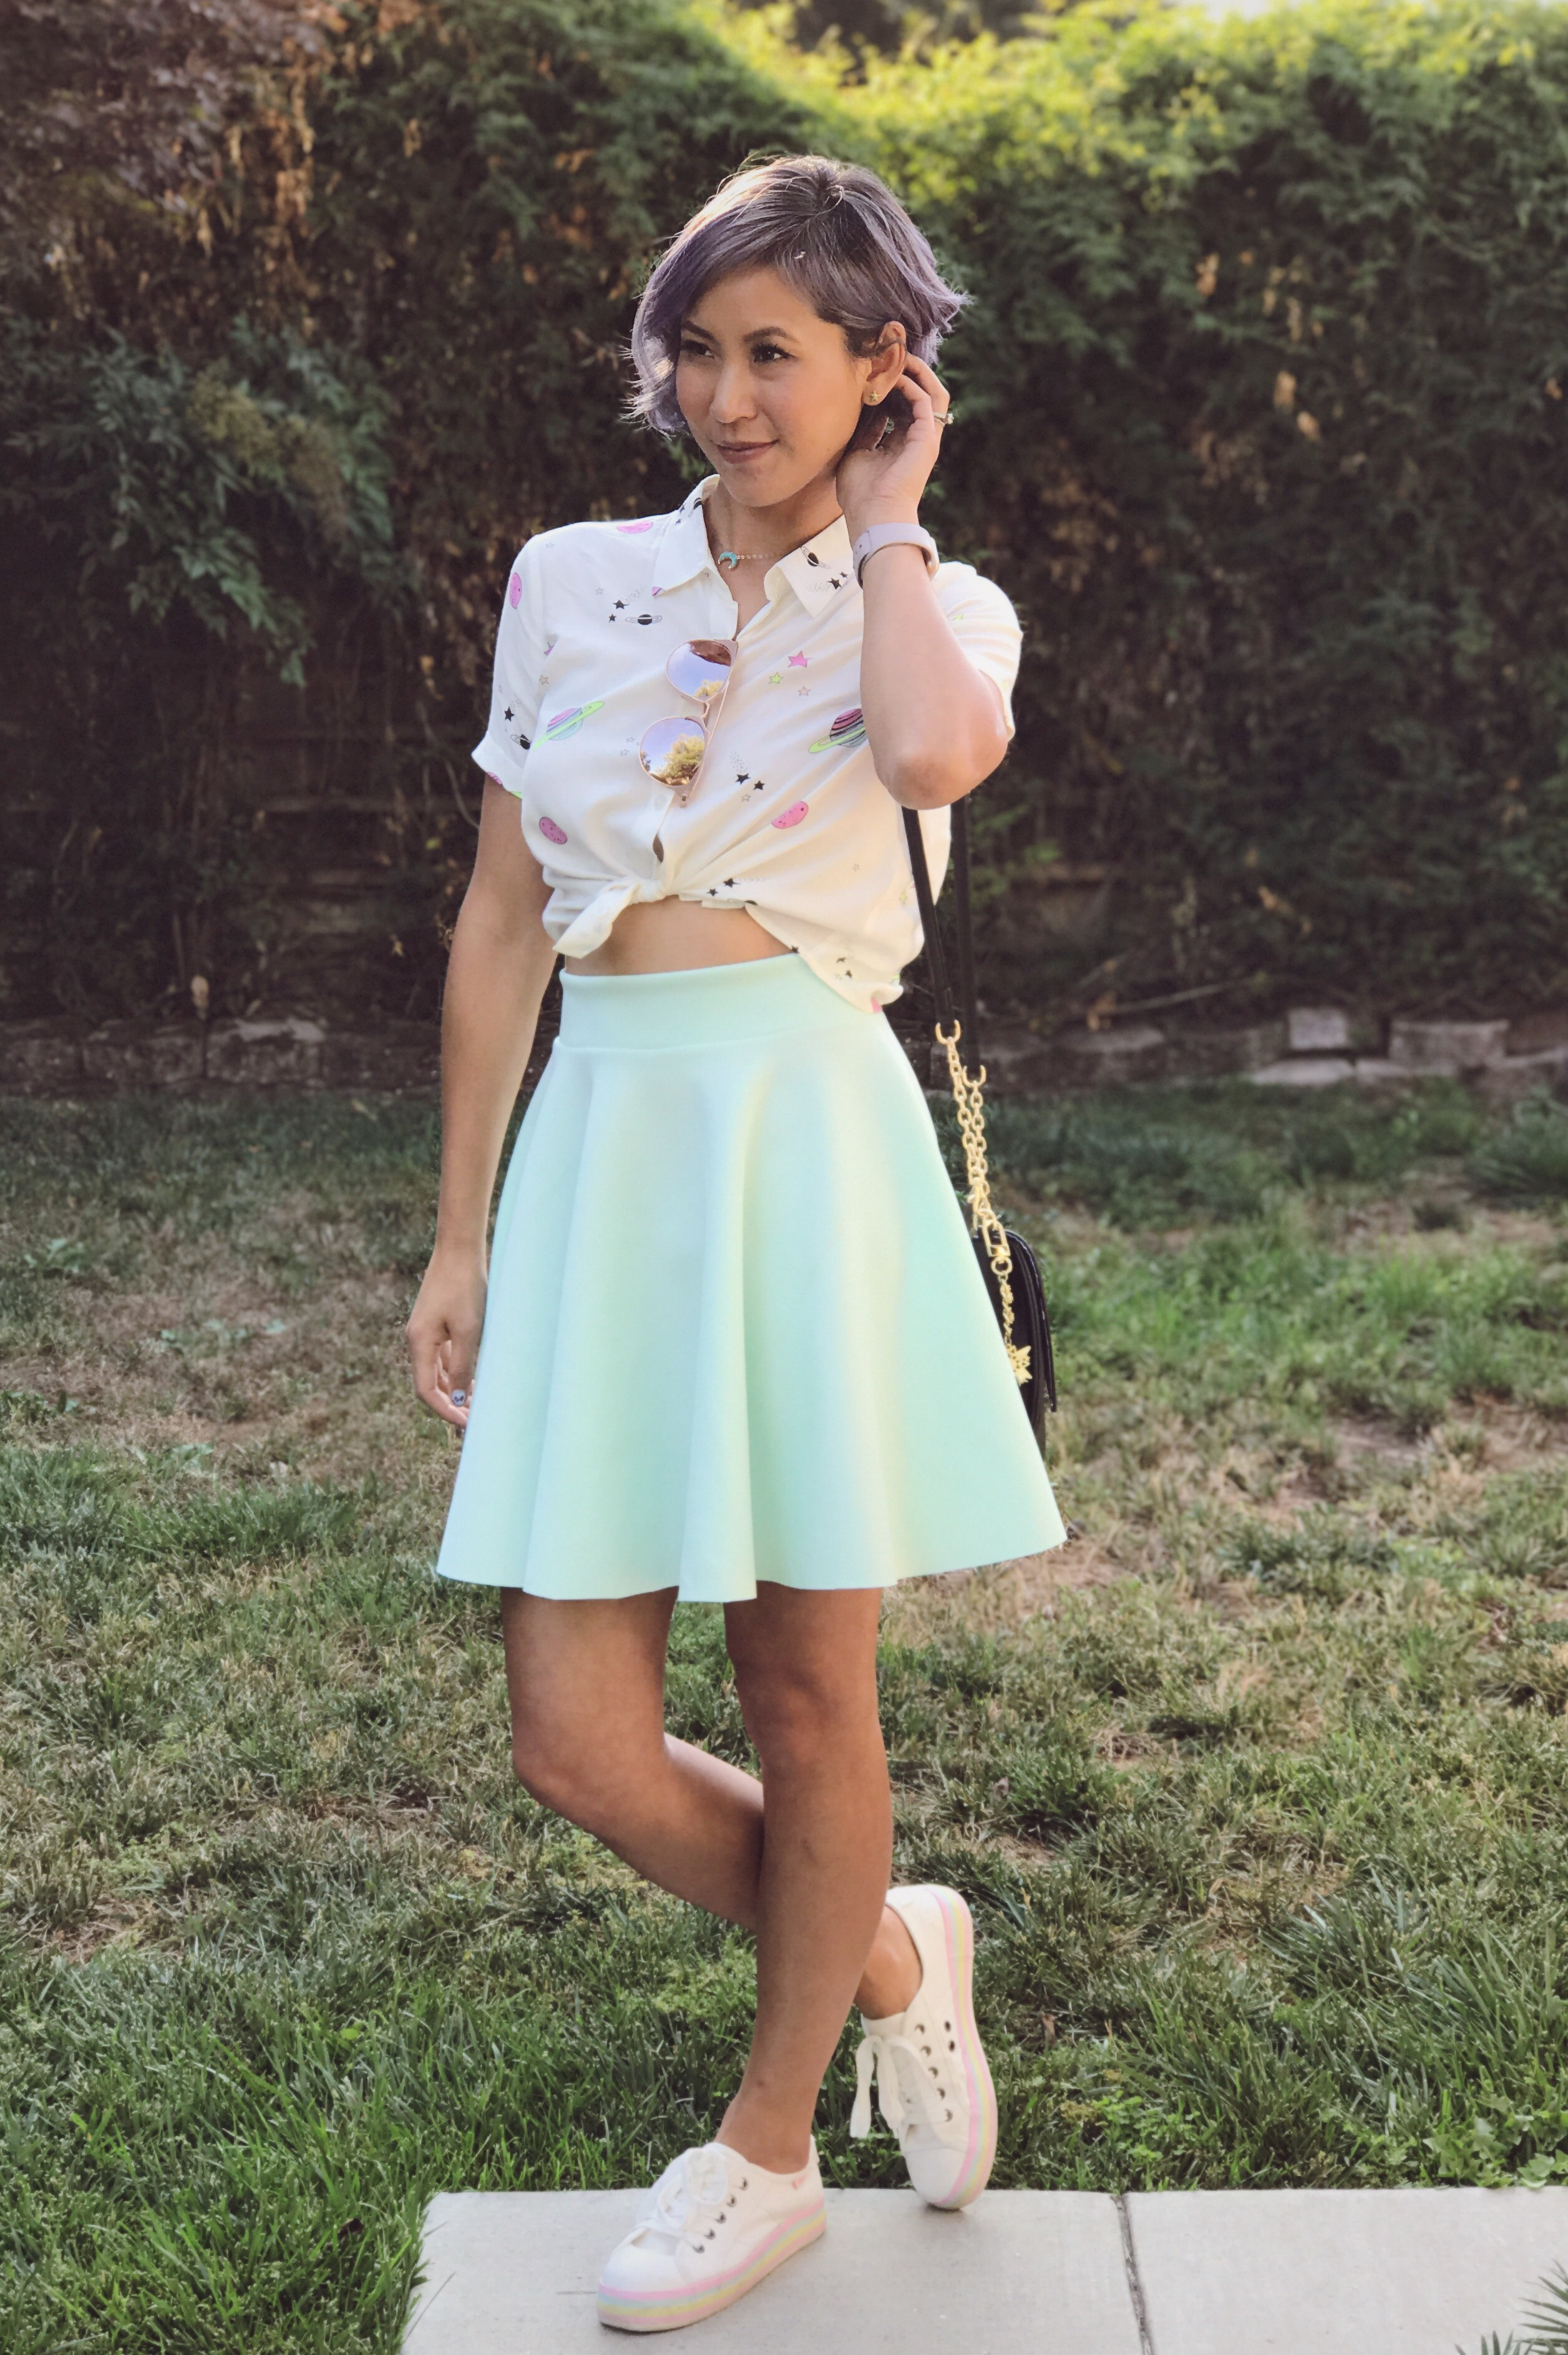 Galaxy print shirt and mint green skirt outfit